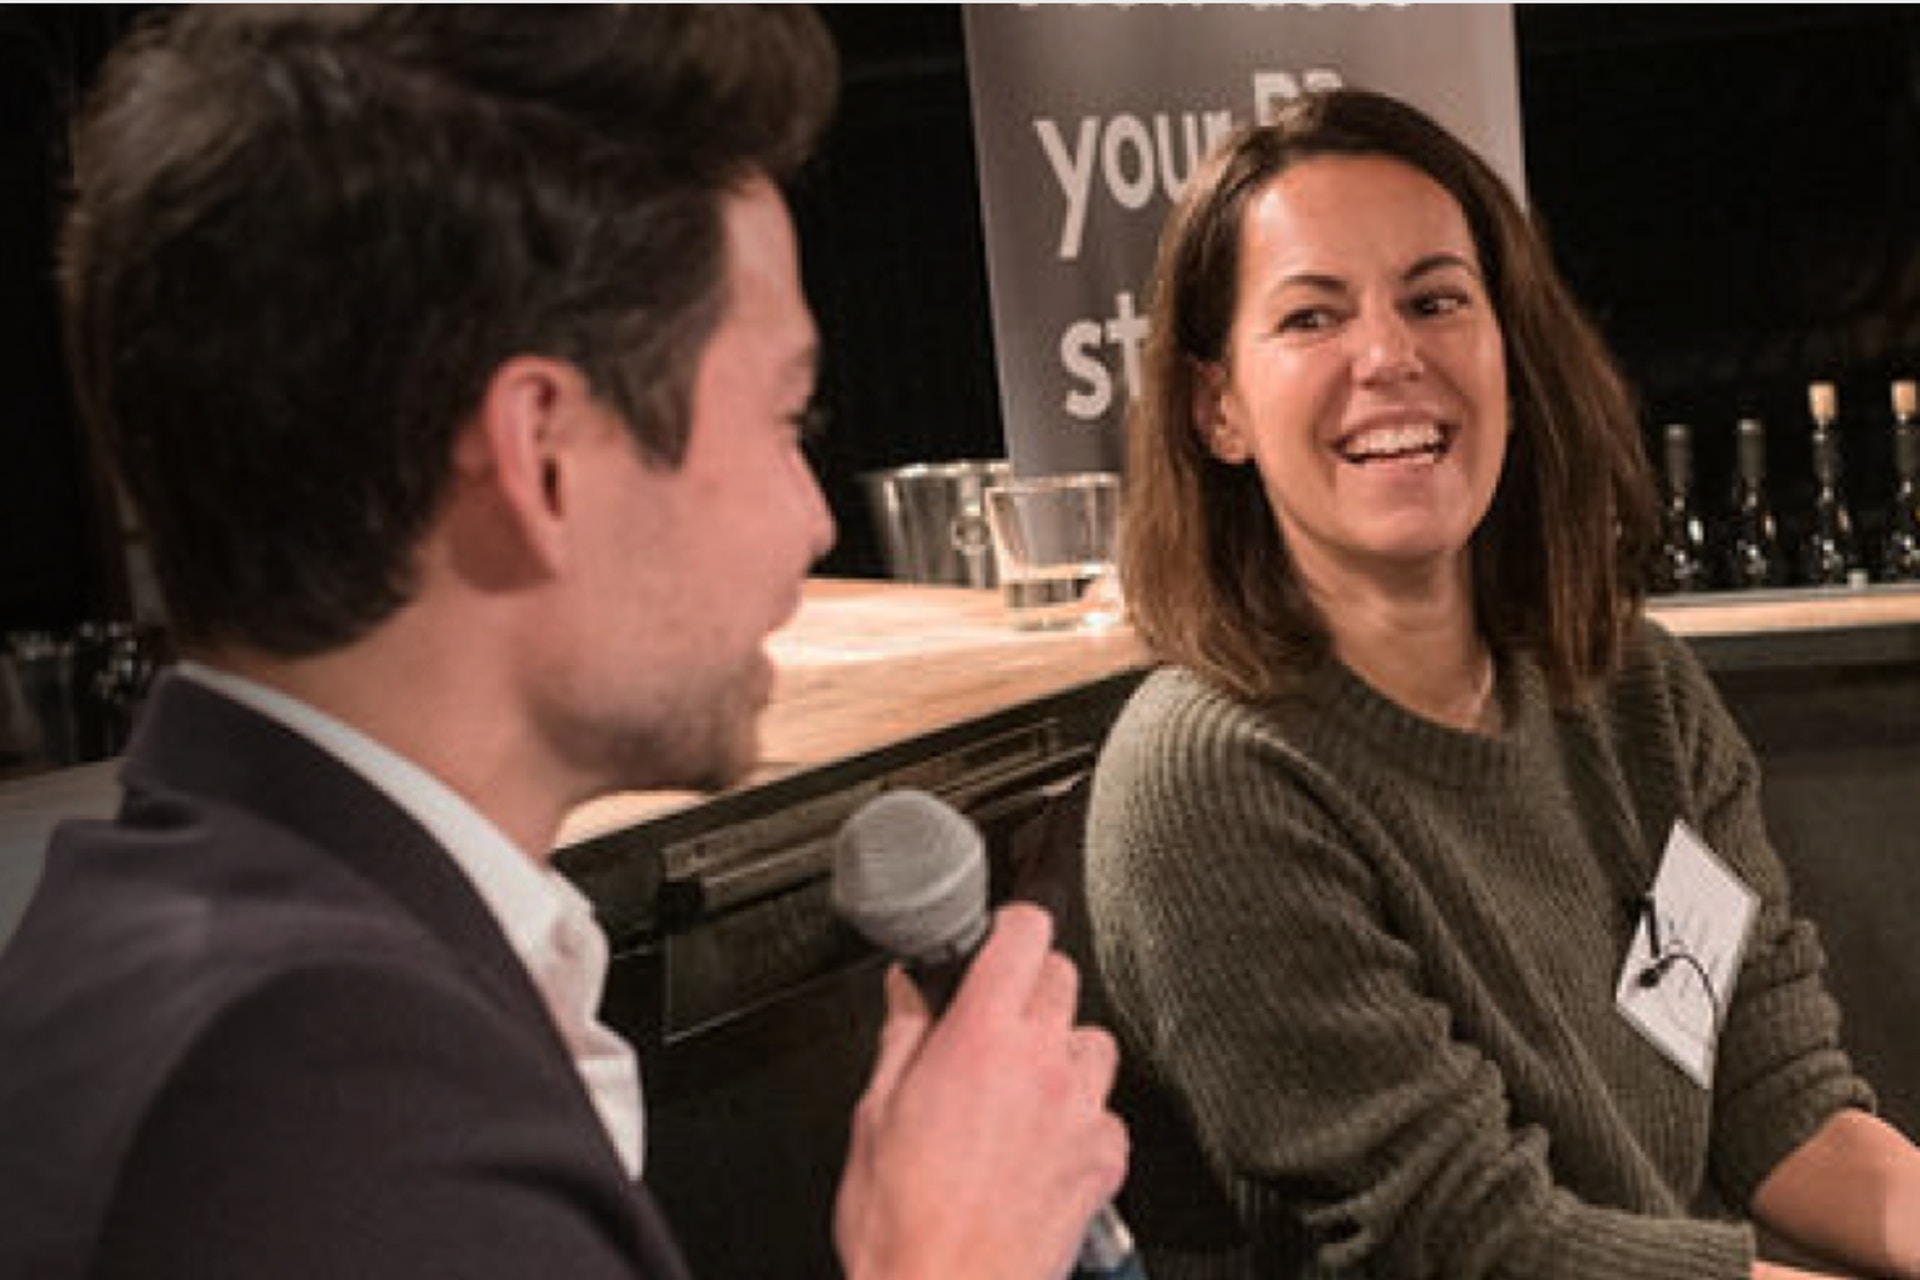 Man talking into a microphone and a woman looking at him, laughing.